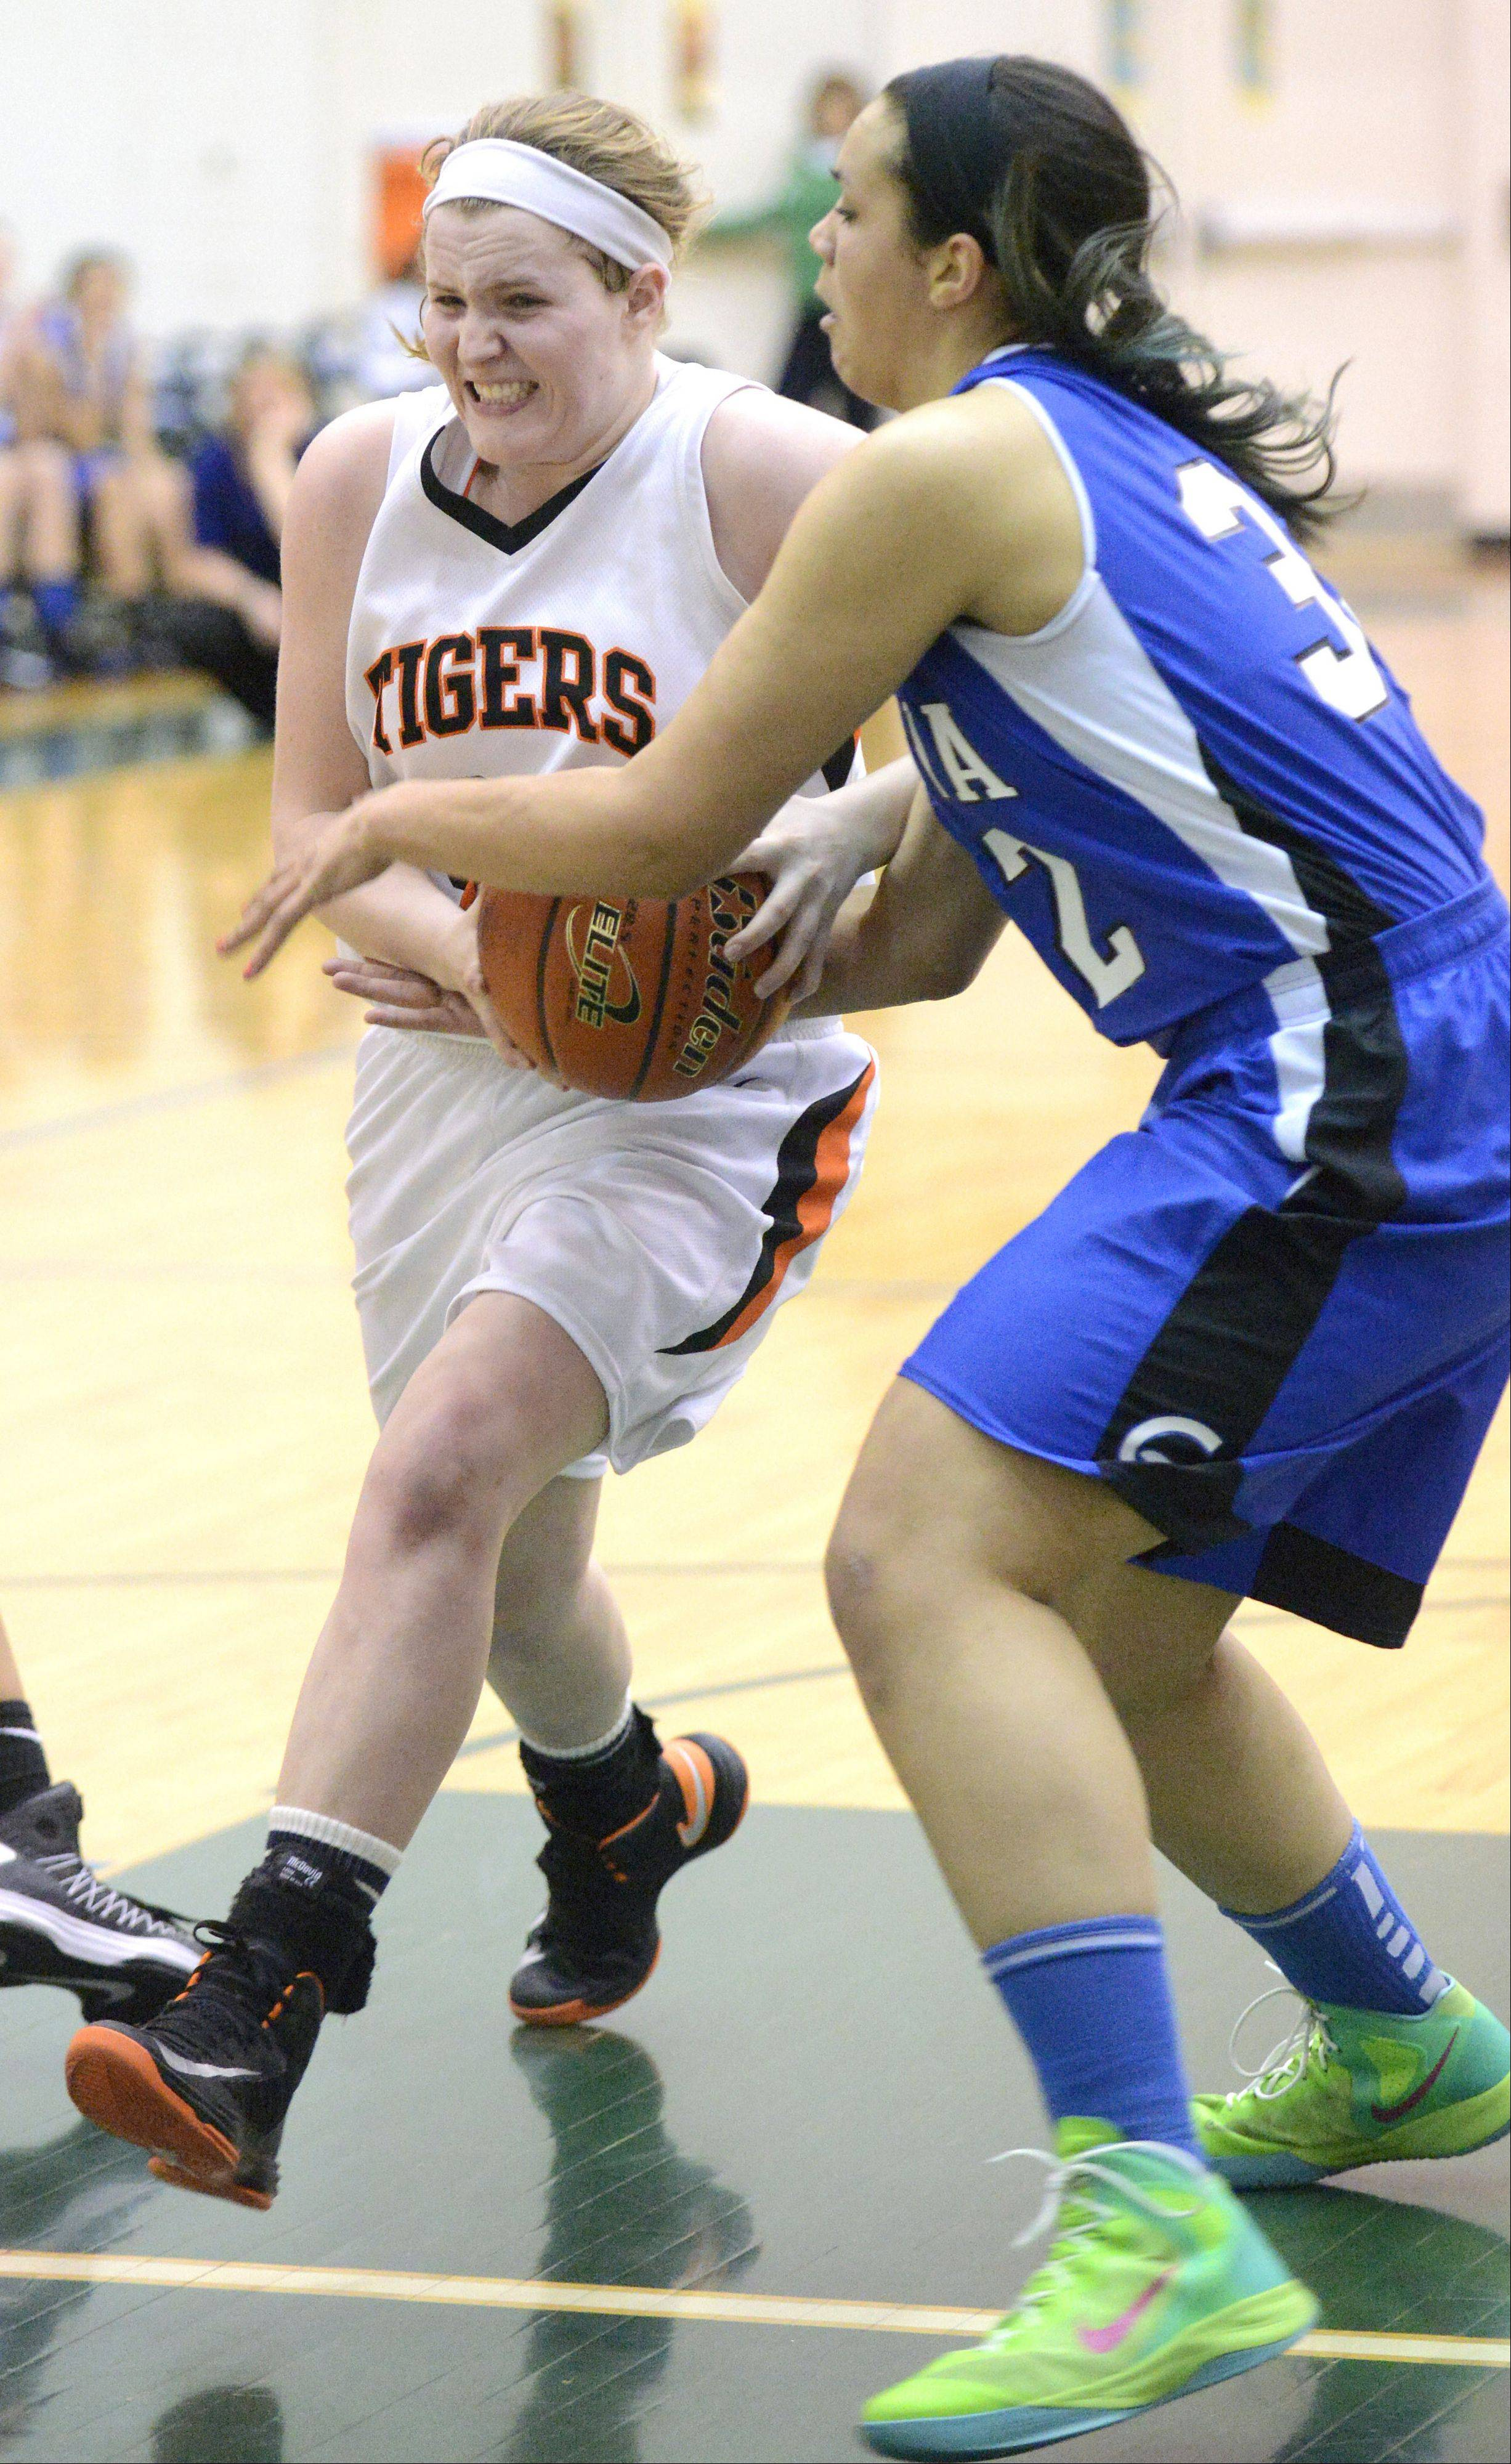 Wheaton Warrenville South's Olivia Linebarger pushes past Geneva's Sidney Santos in a drive for the hoop in the fourth quarter of the Class 4A sectional semifinals on Tuesday, February 19.